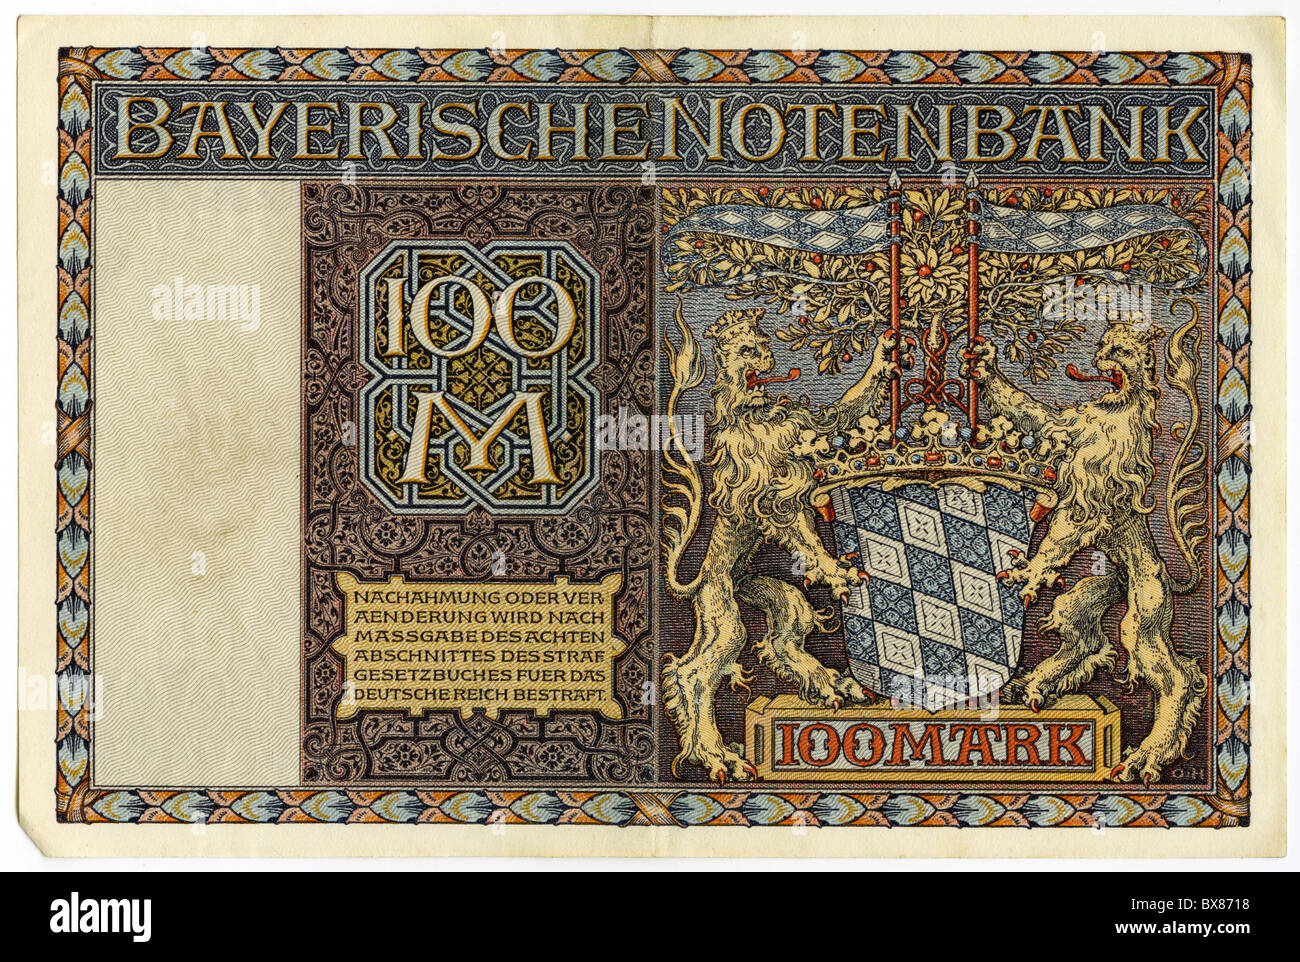 money / finance, banknotes, Germany, 100 Mark, Bavarian Central bank, Munich, 1.1.1922, Additional-Rights-Clearences Stock Photo